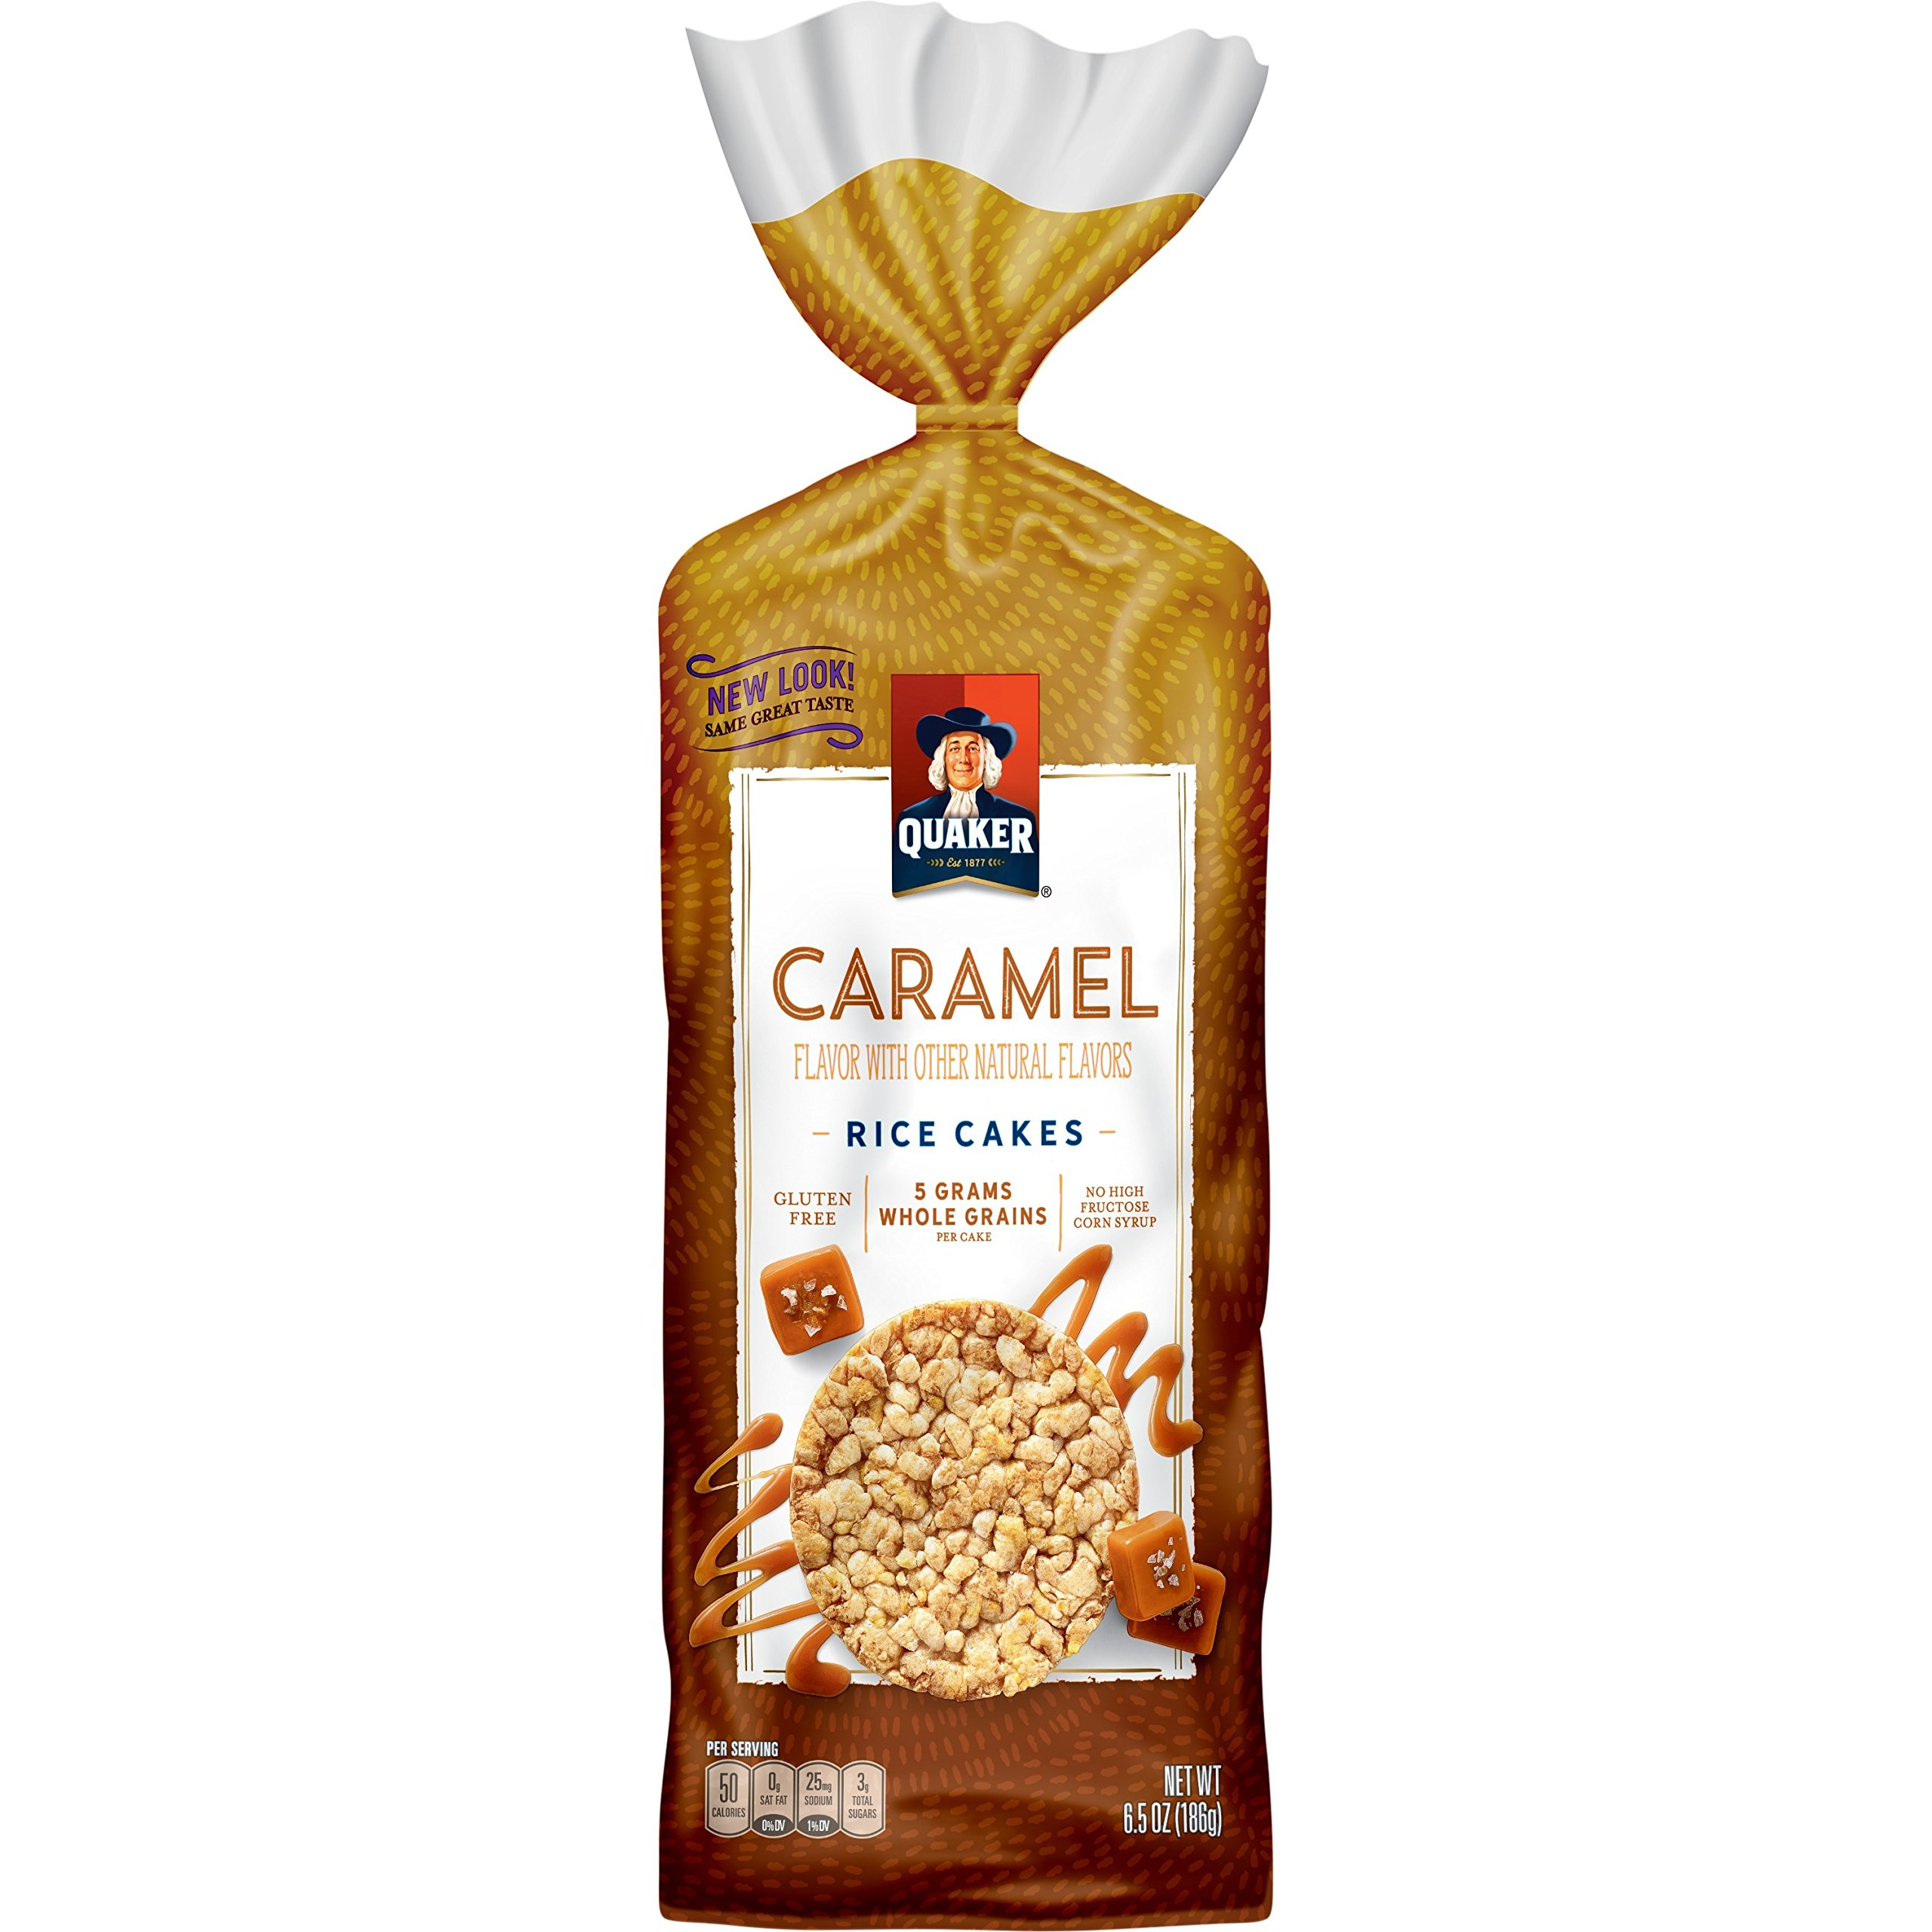 Quaker Rice Cakes, Caramel Corn, 6.56 oz